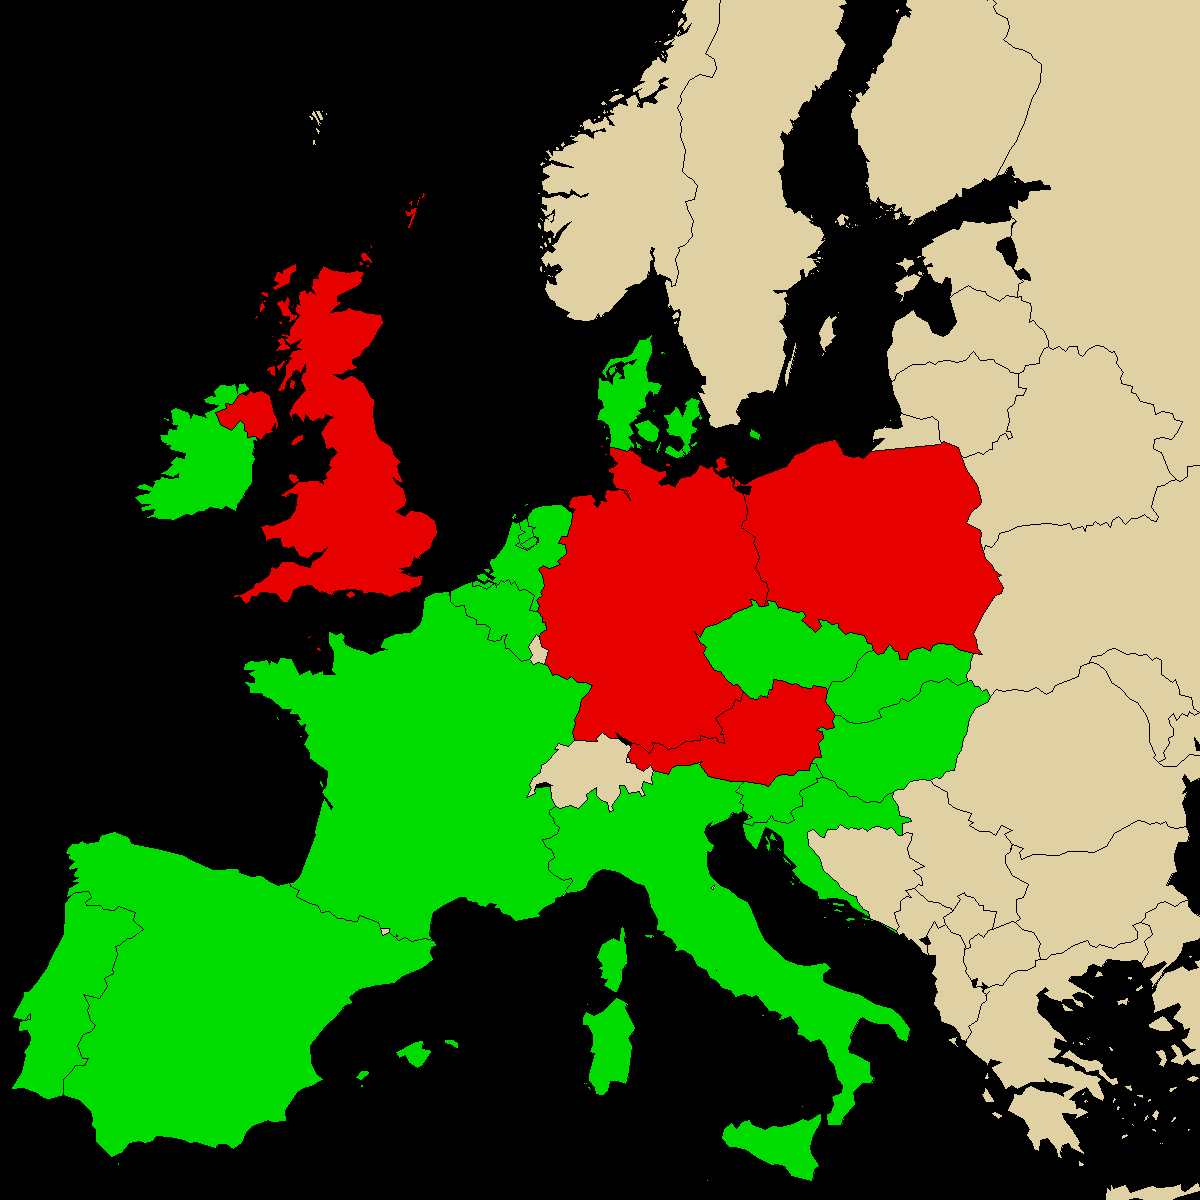 legal info map for our product Mephedrene, green are countries with no ban, red with ban, grey is unknown